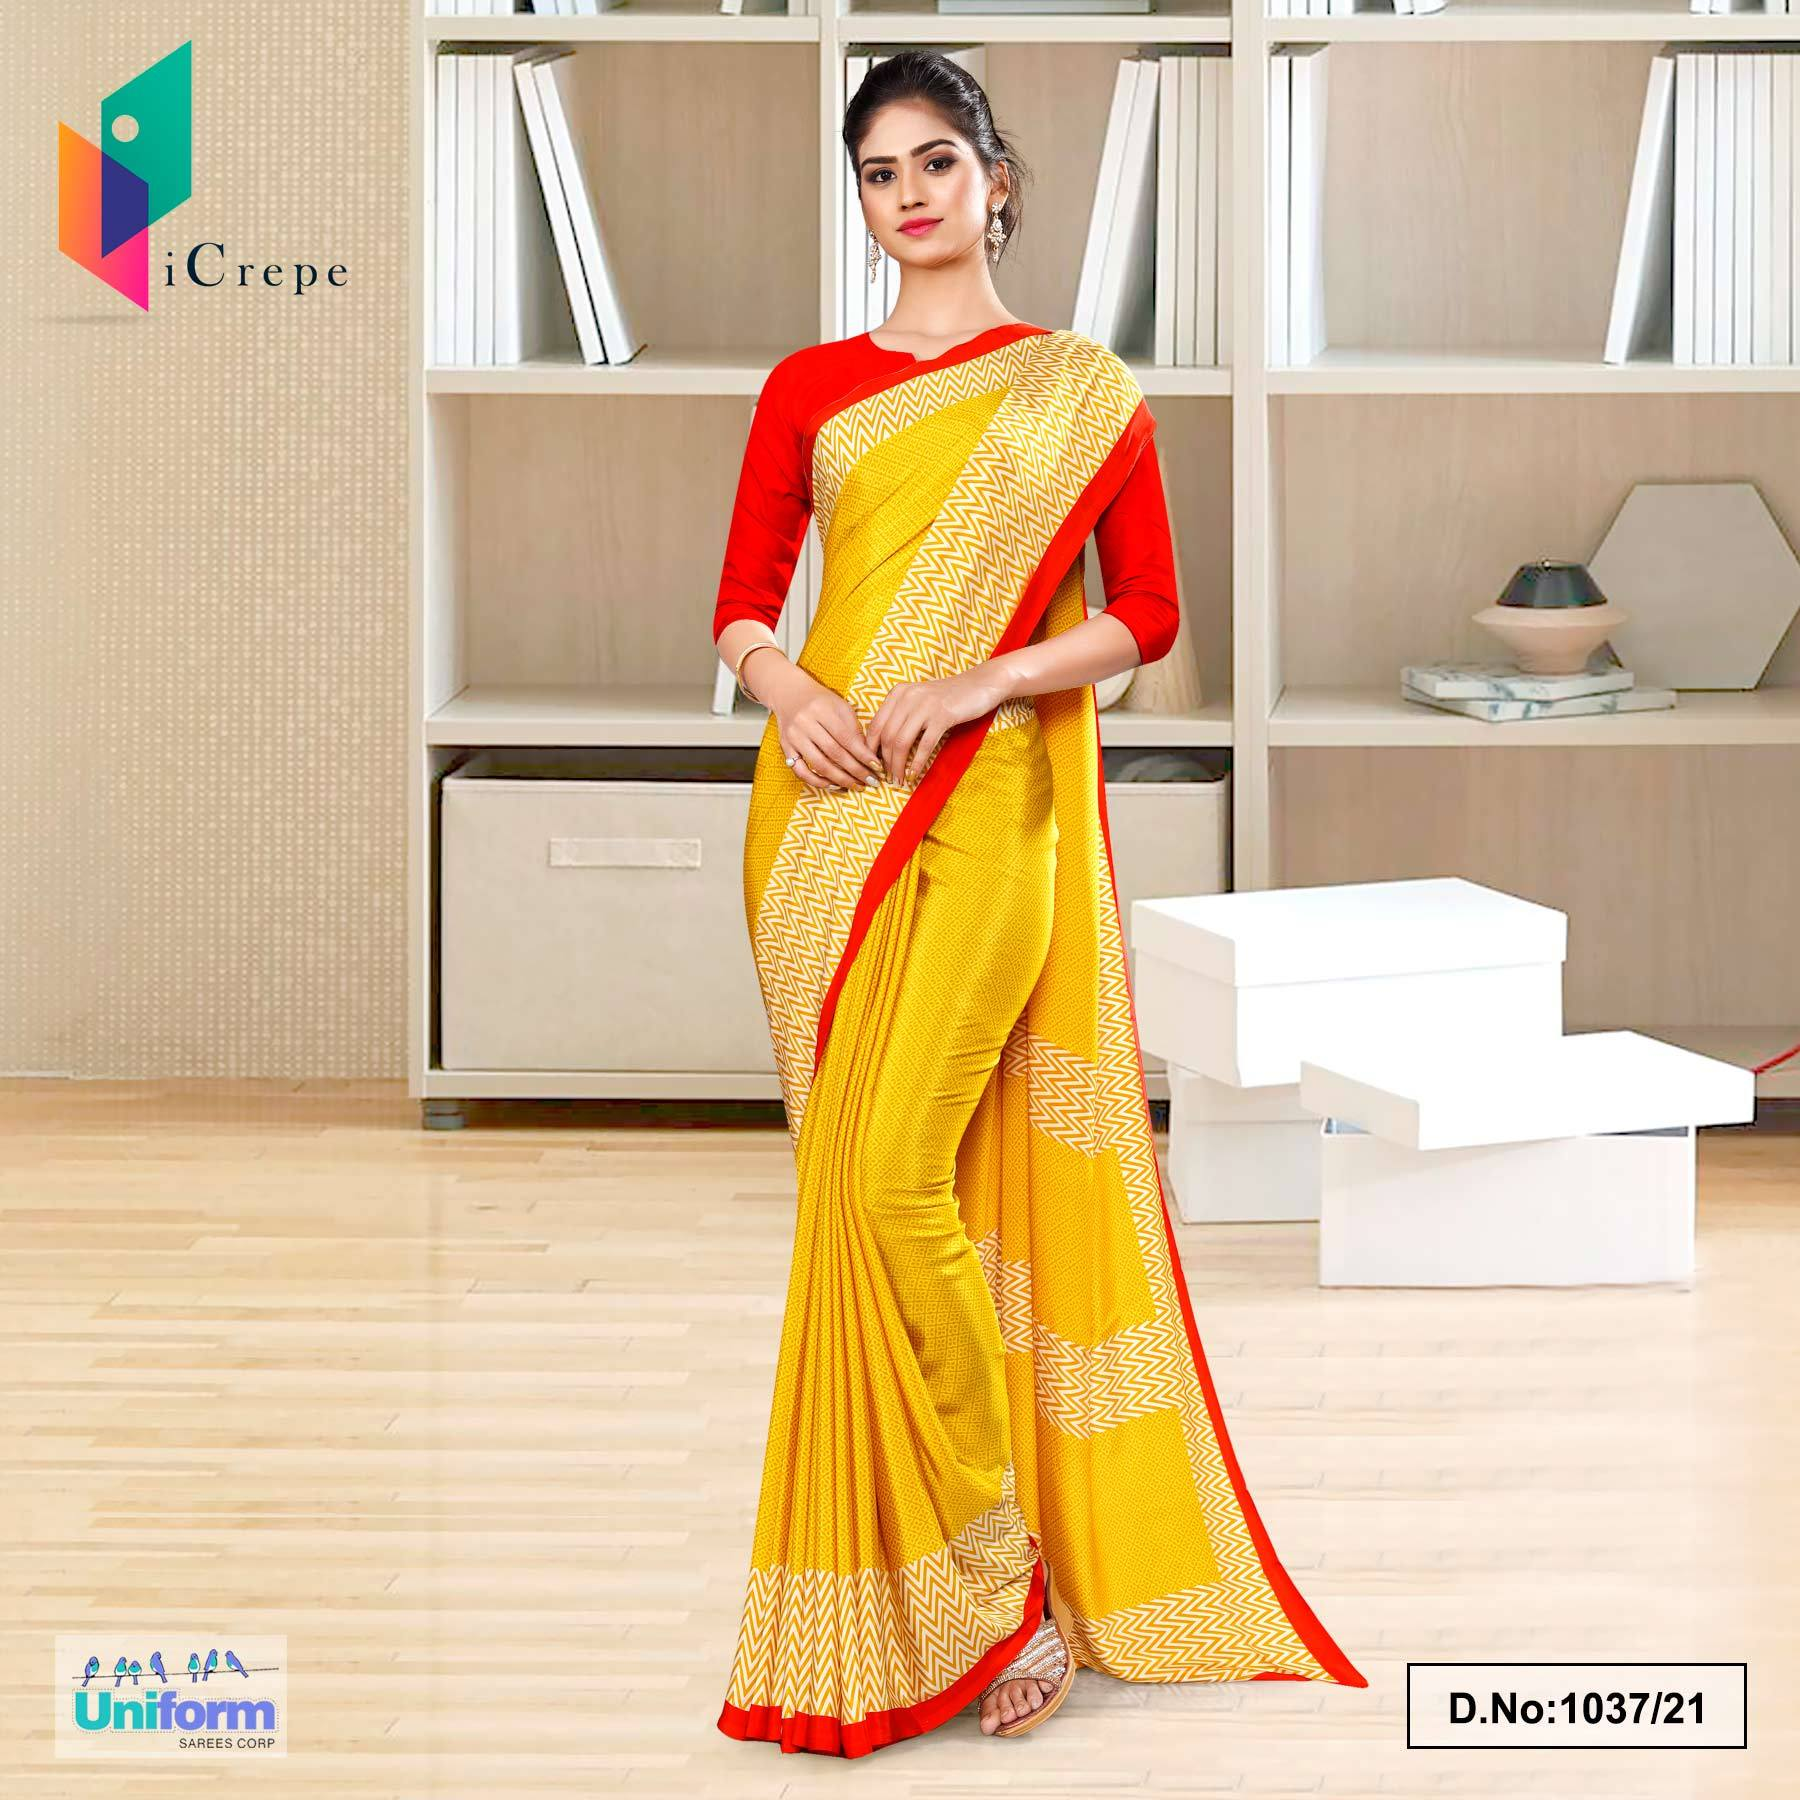 Yellow Red Premium Italian Silk Crepe Uniform Sarees for School Teachers